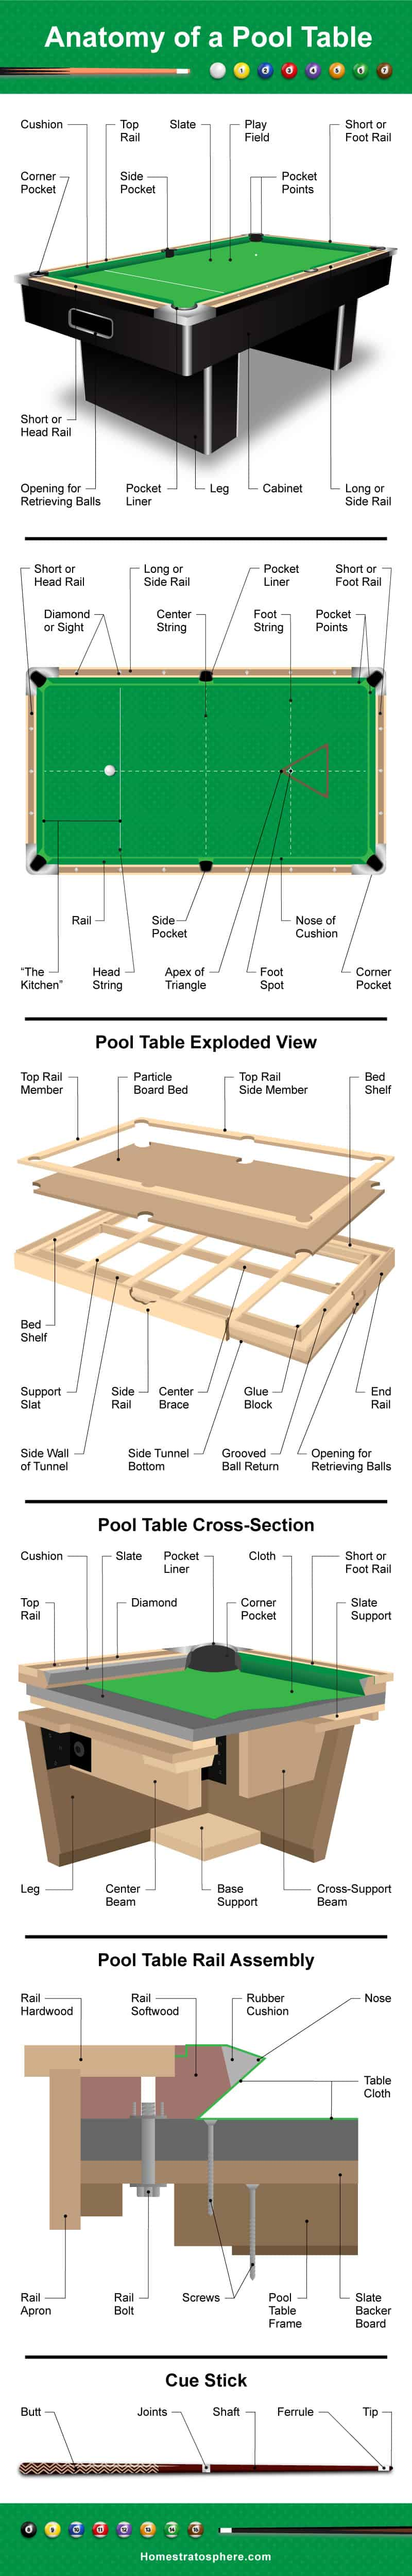 Pool table diagram illustrating the anatomy of a pool table including the table top, surface, cross section and pool cue.